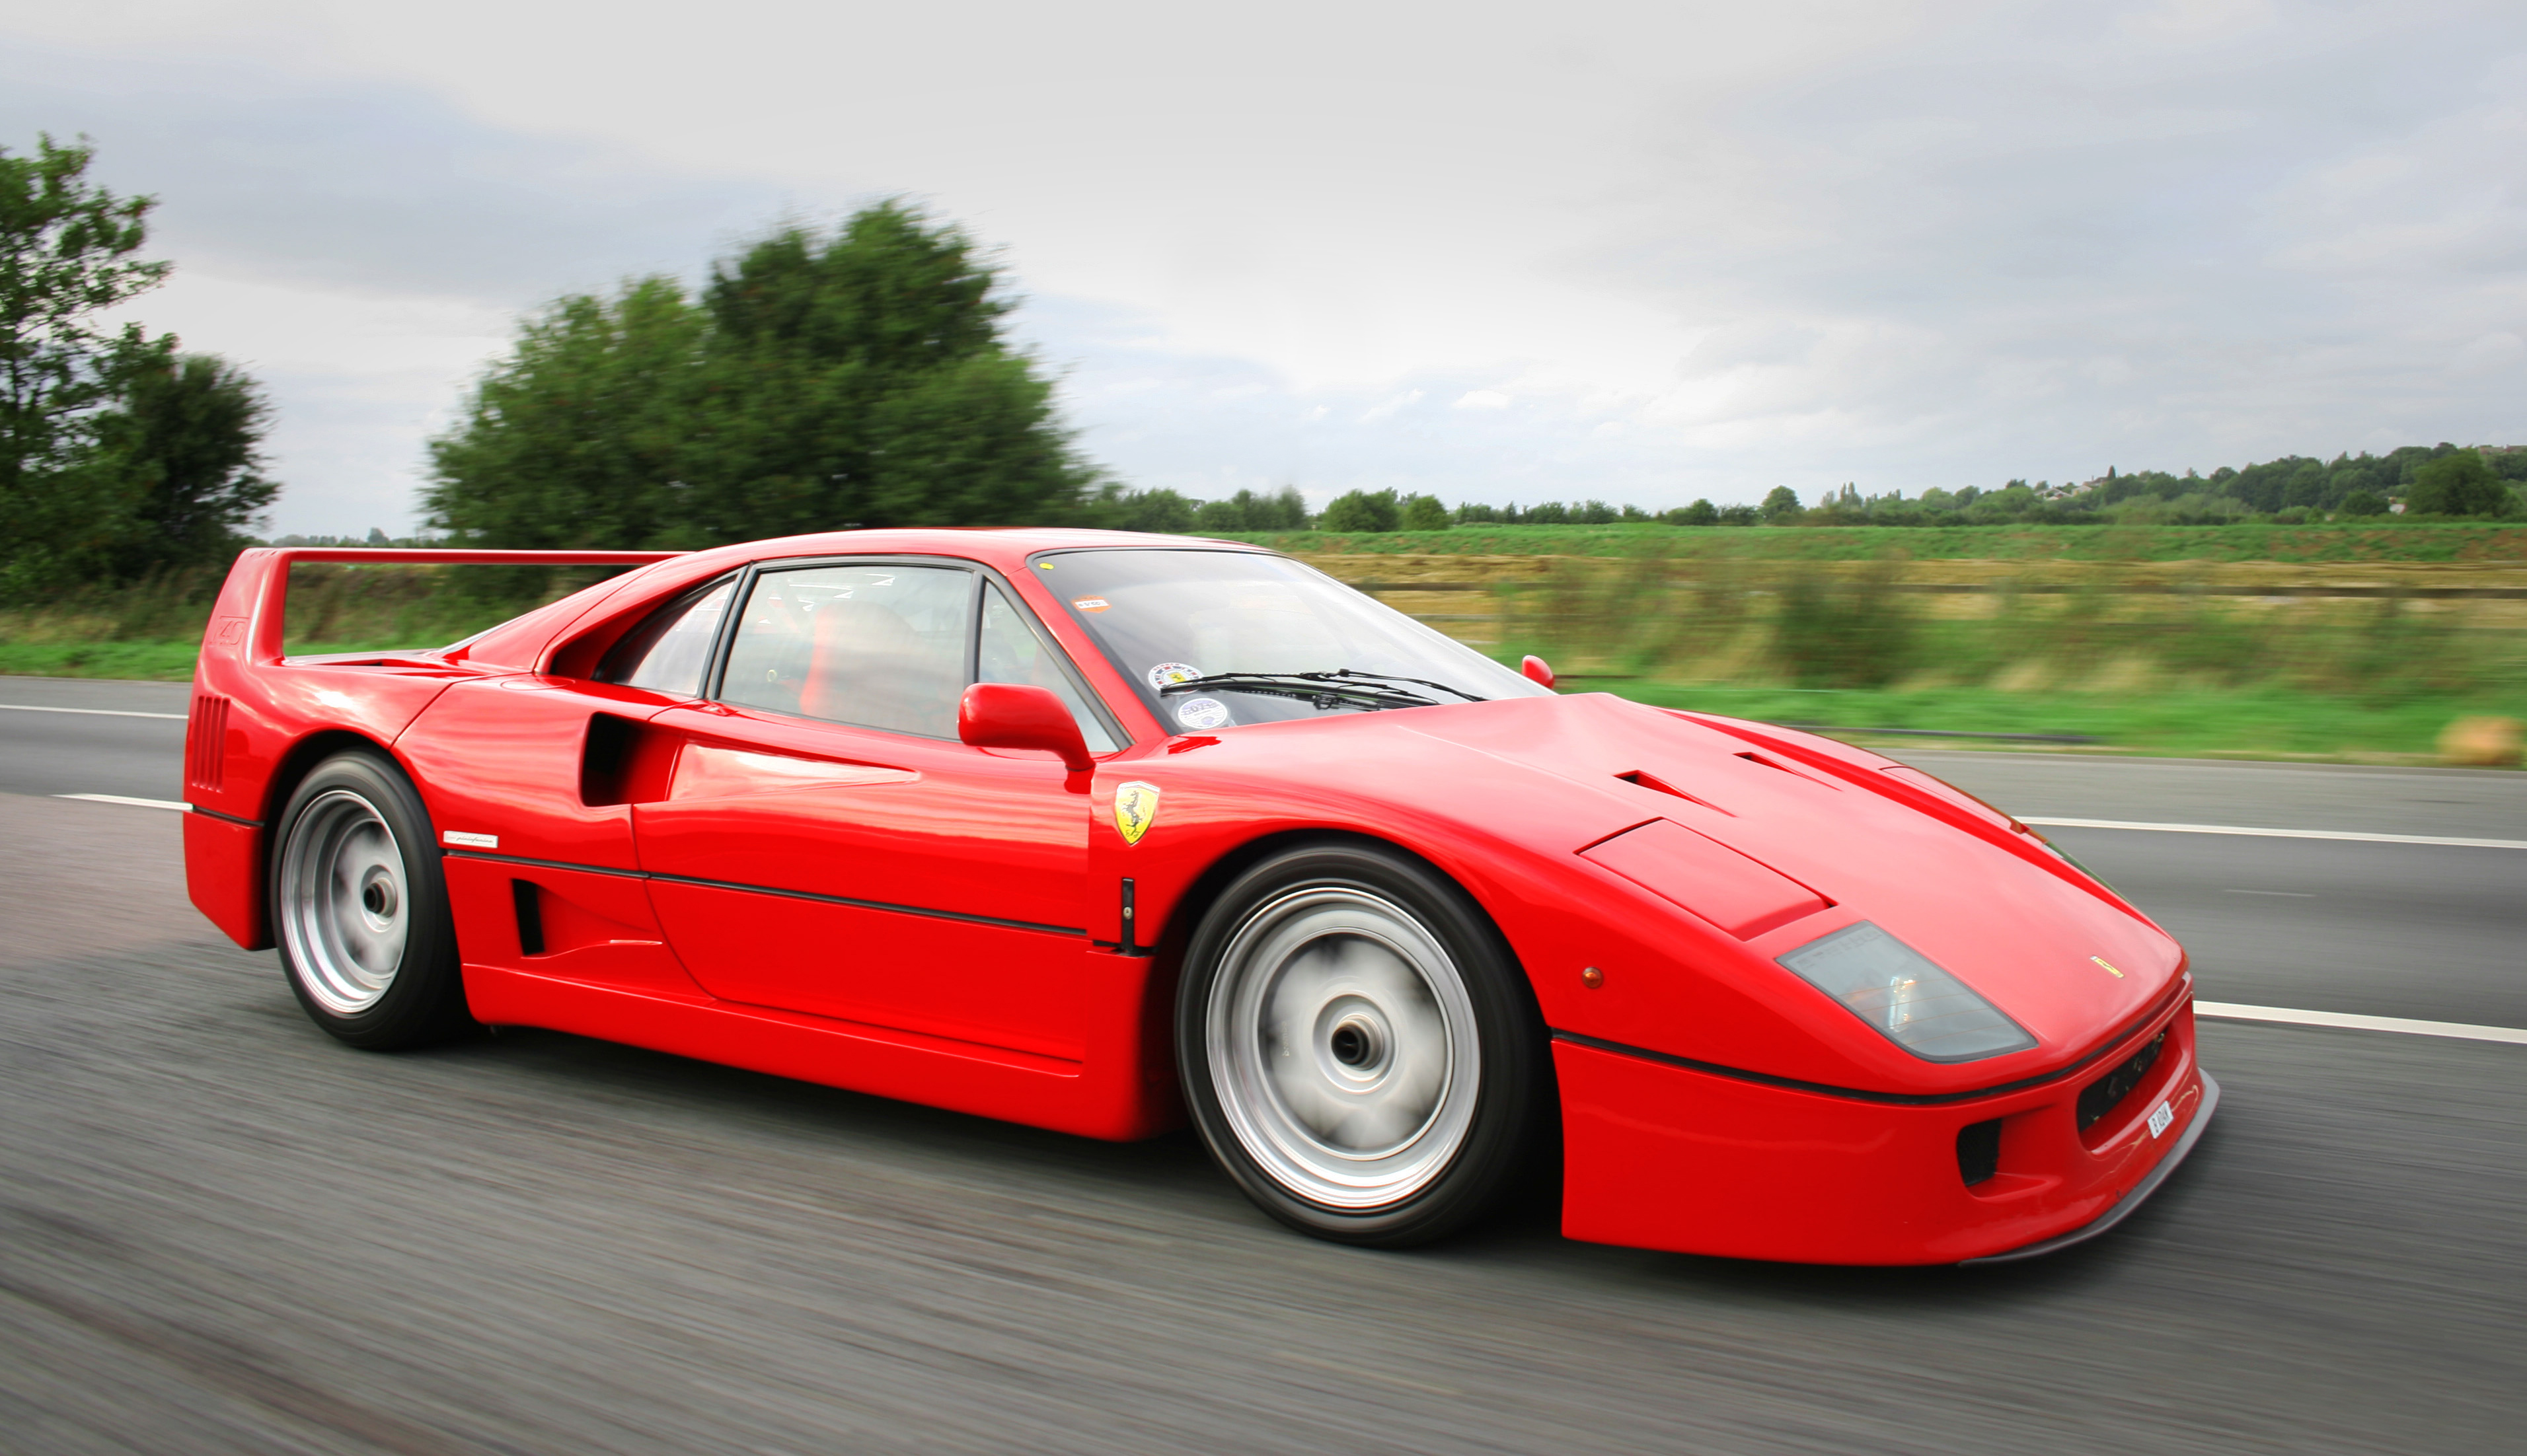 Ferrari Past Models More Than 60 Years Of Cars Ferrari Com >> Ferrari F40 Wikipedia